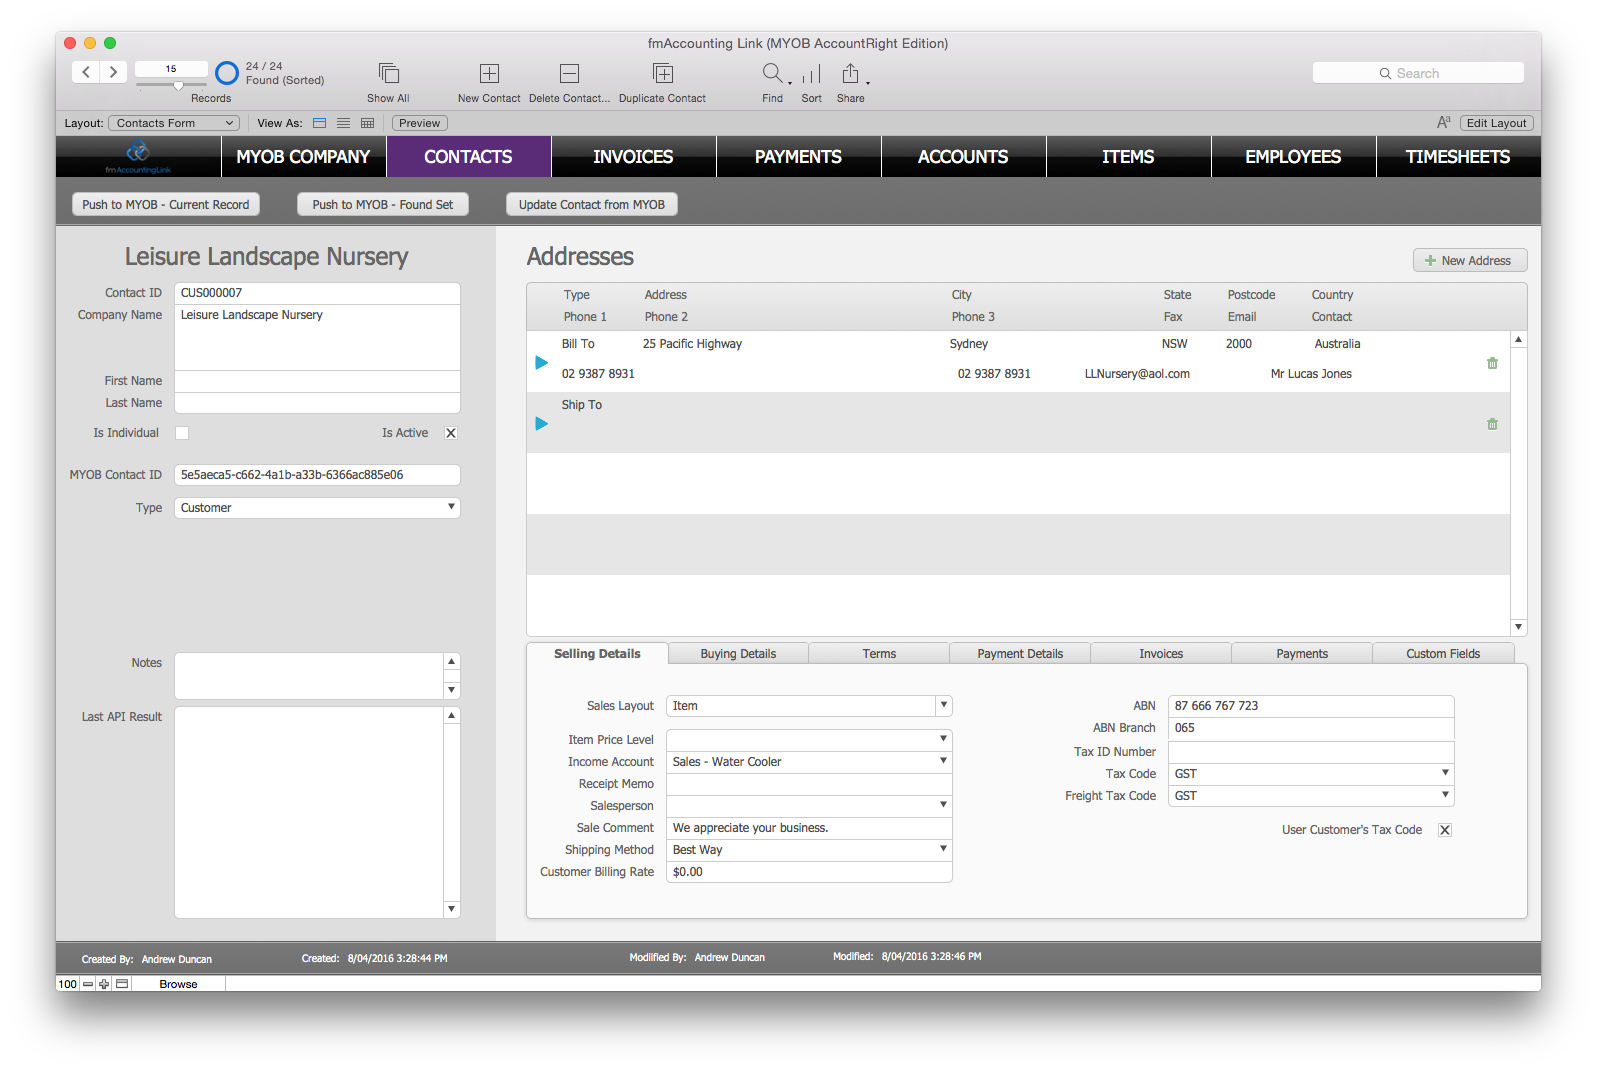 how to get myob accountright to work on mac